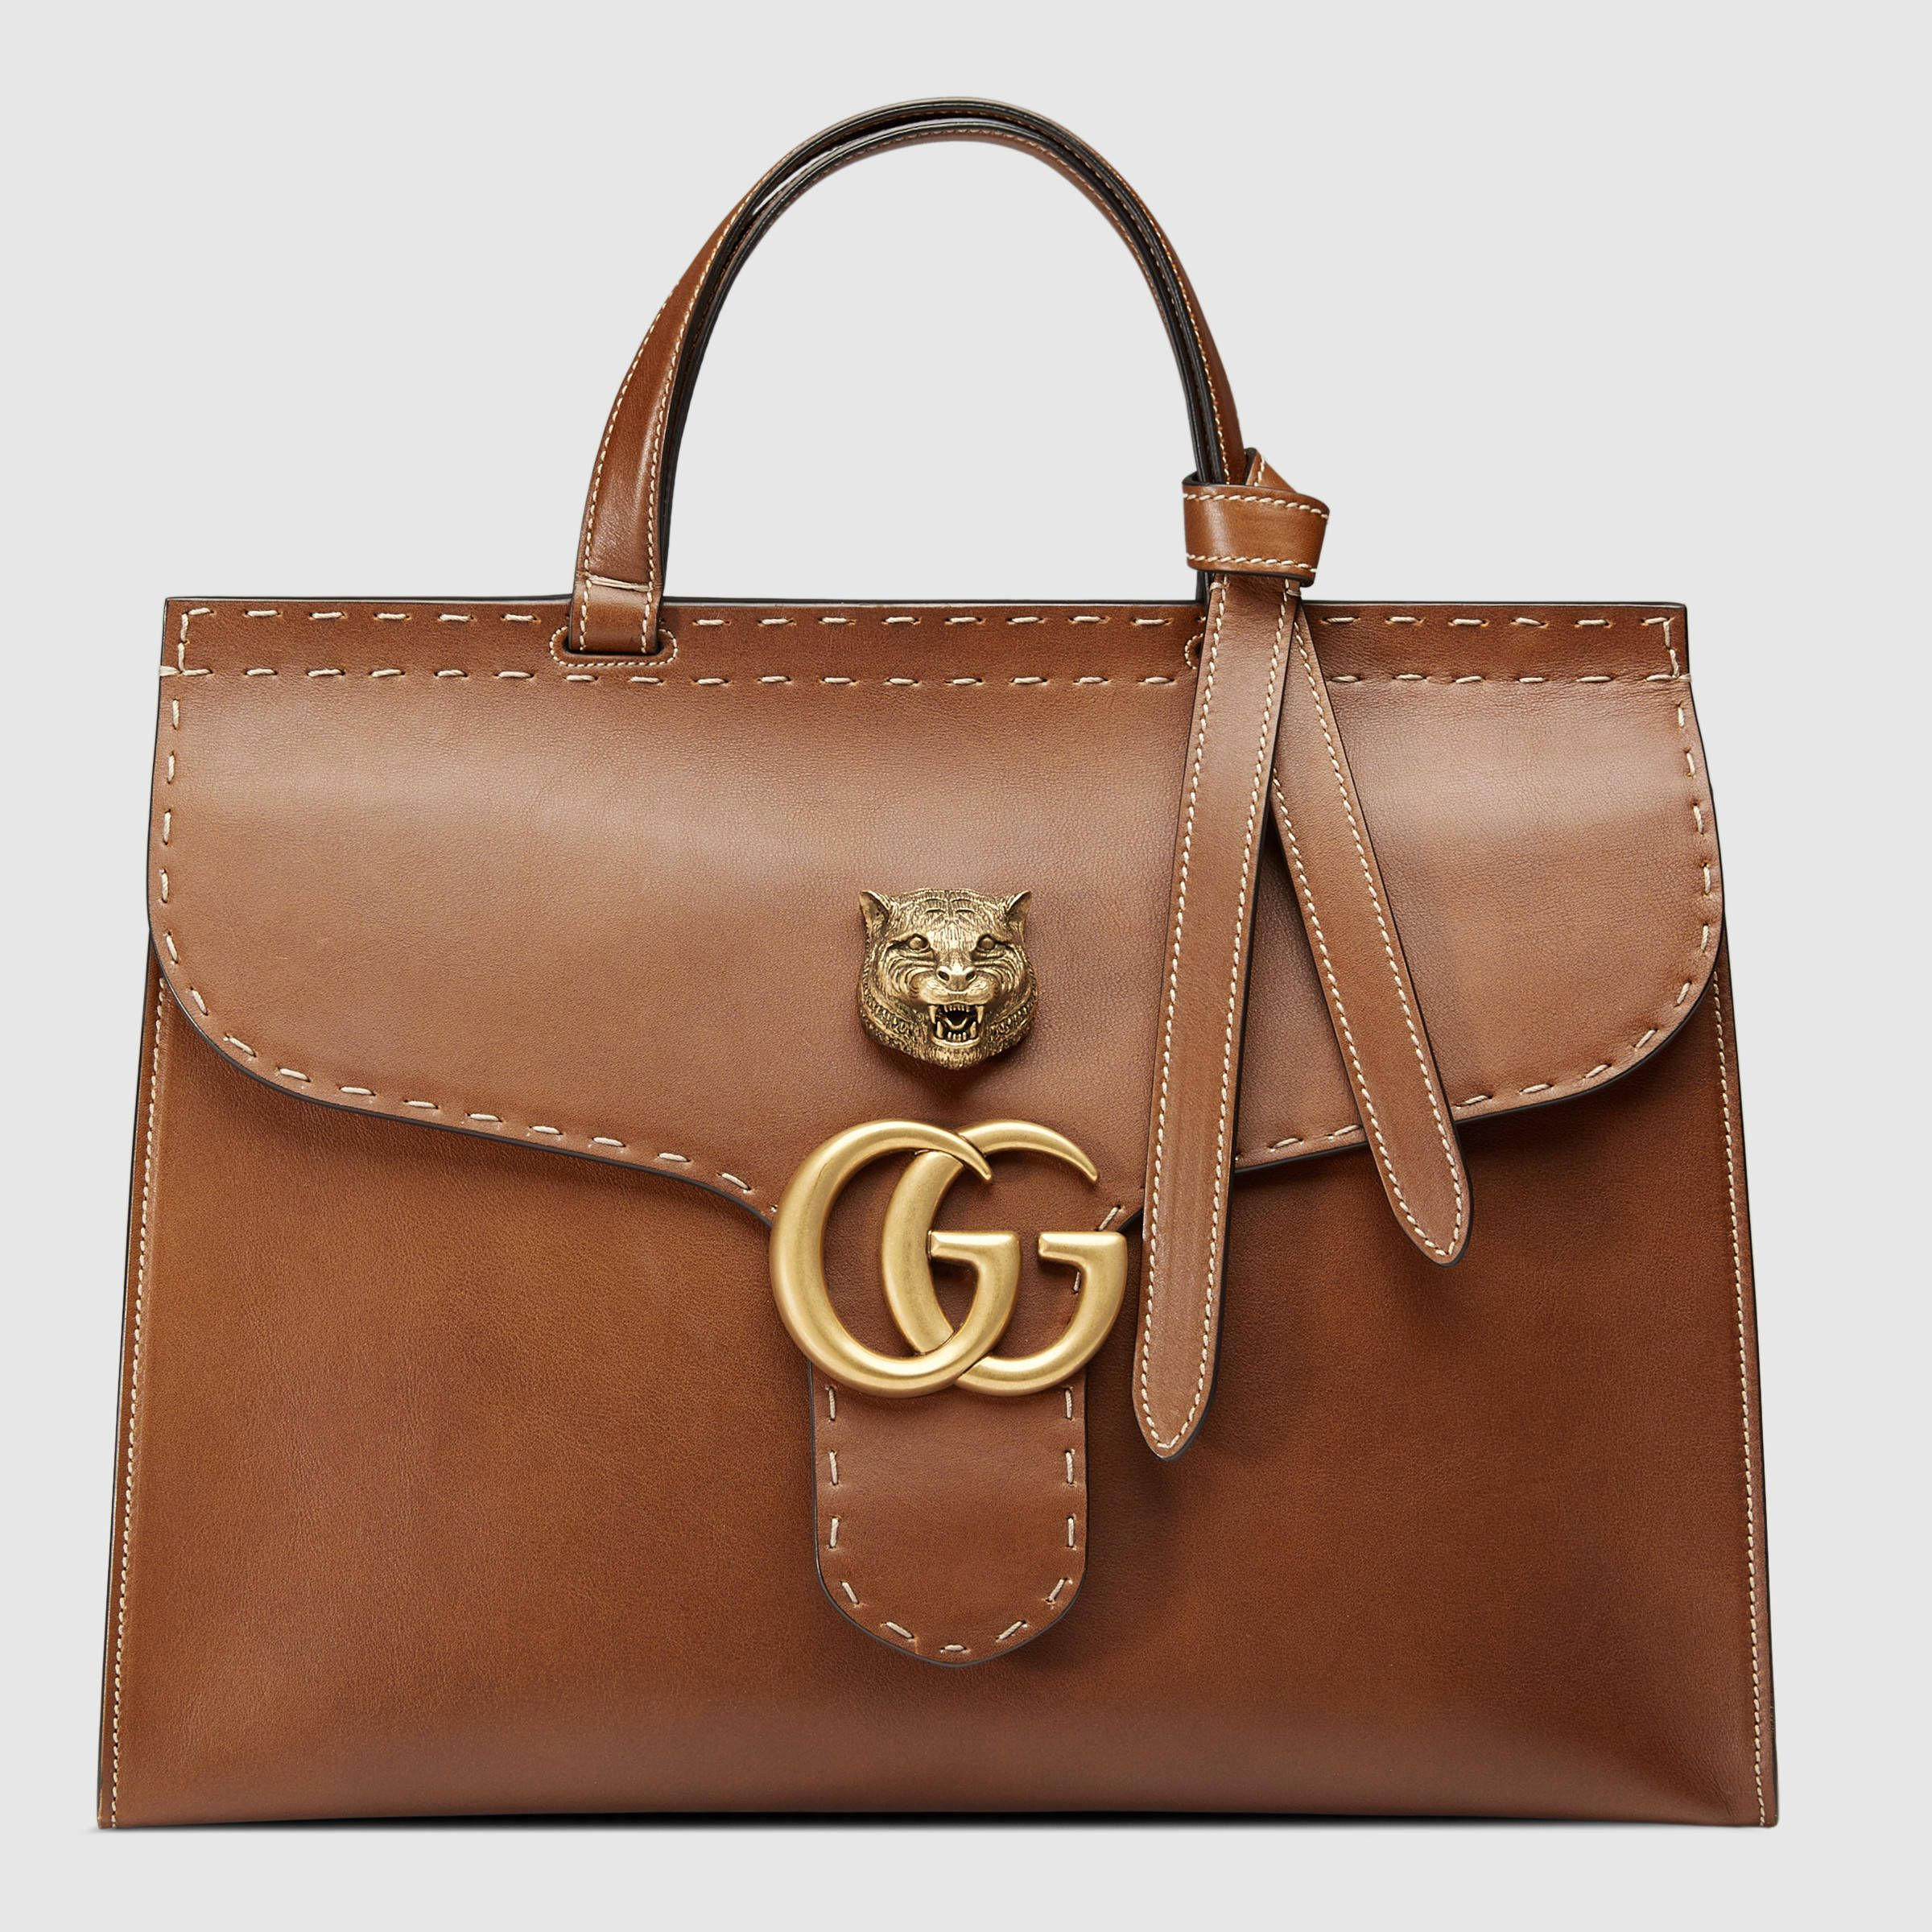 Guccibagis the one thing that your wife or girlfriend will always ...